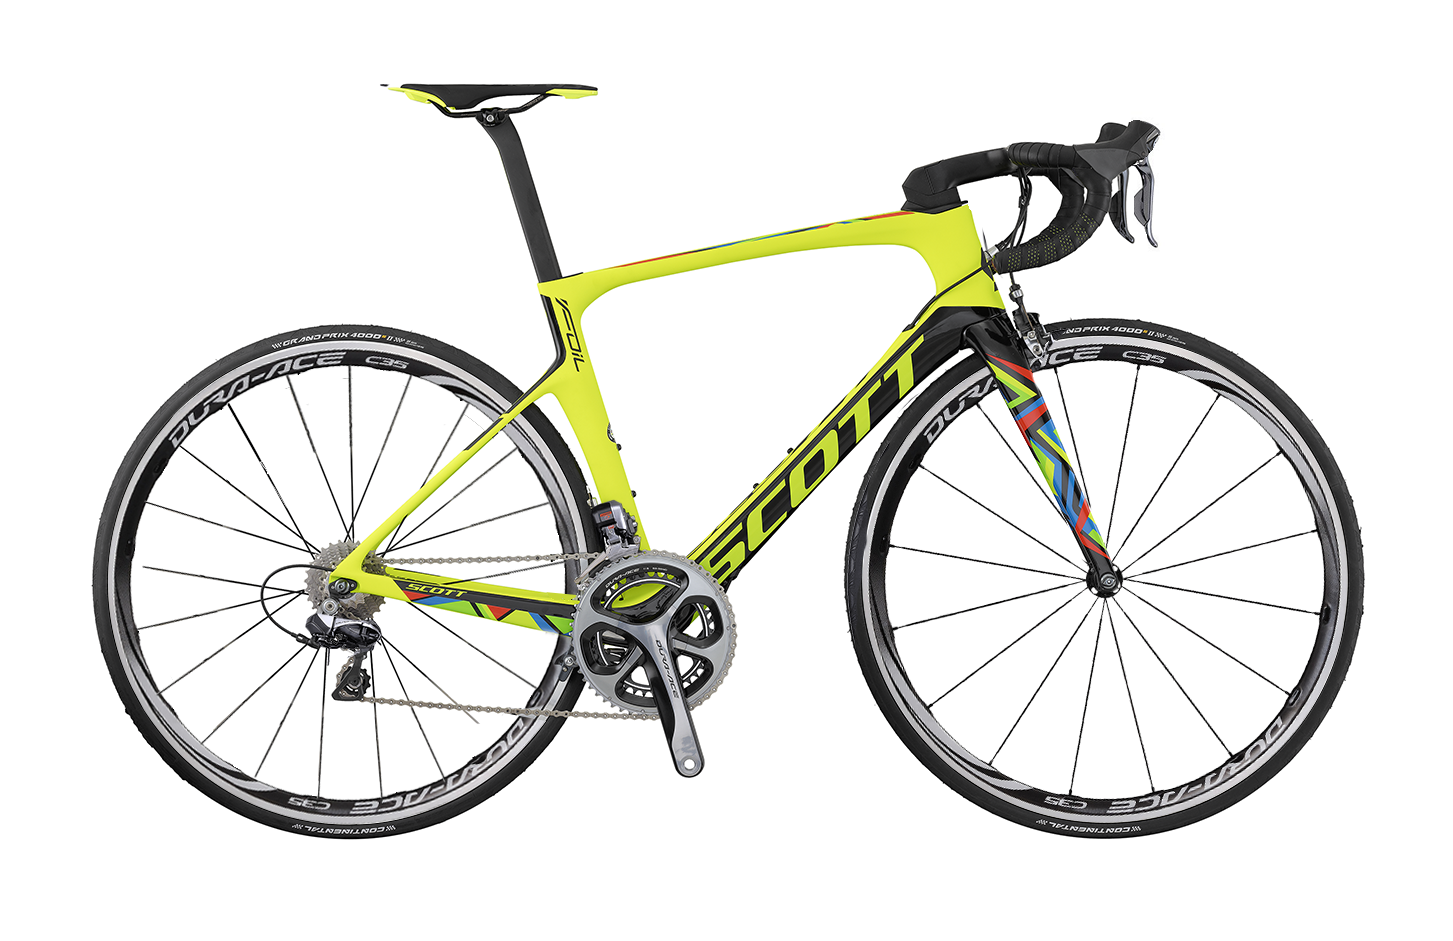 2017 Scott Foil Rio Edition Dura Ace 9070 Road Bike